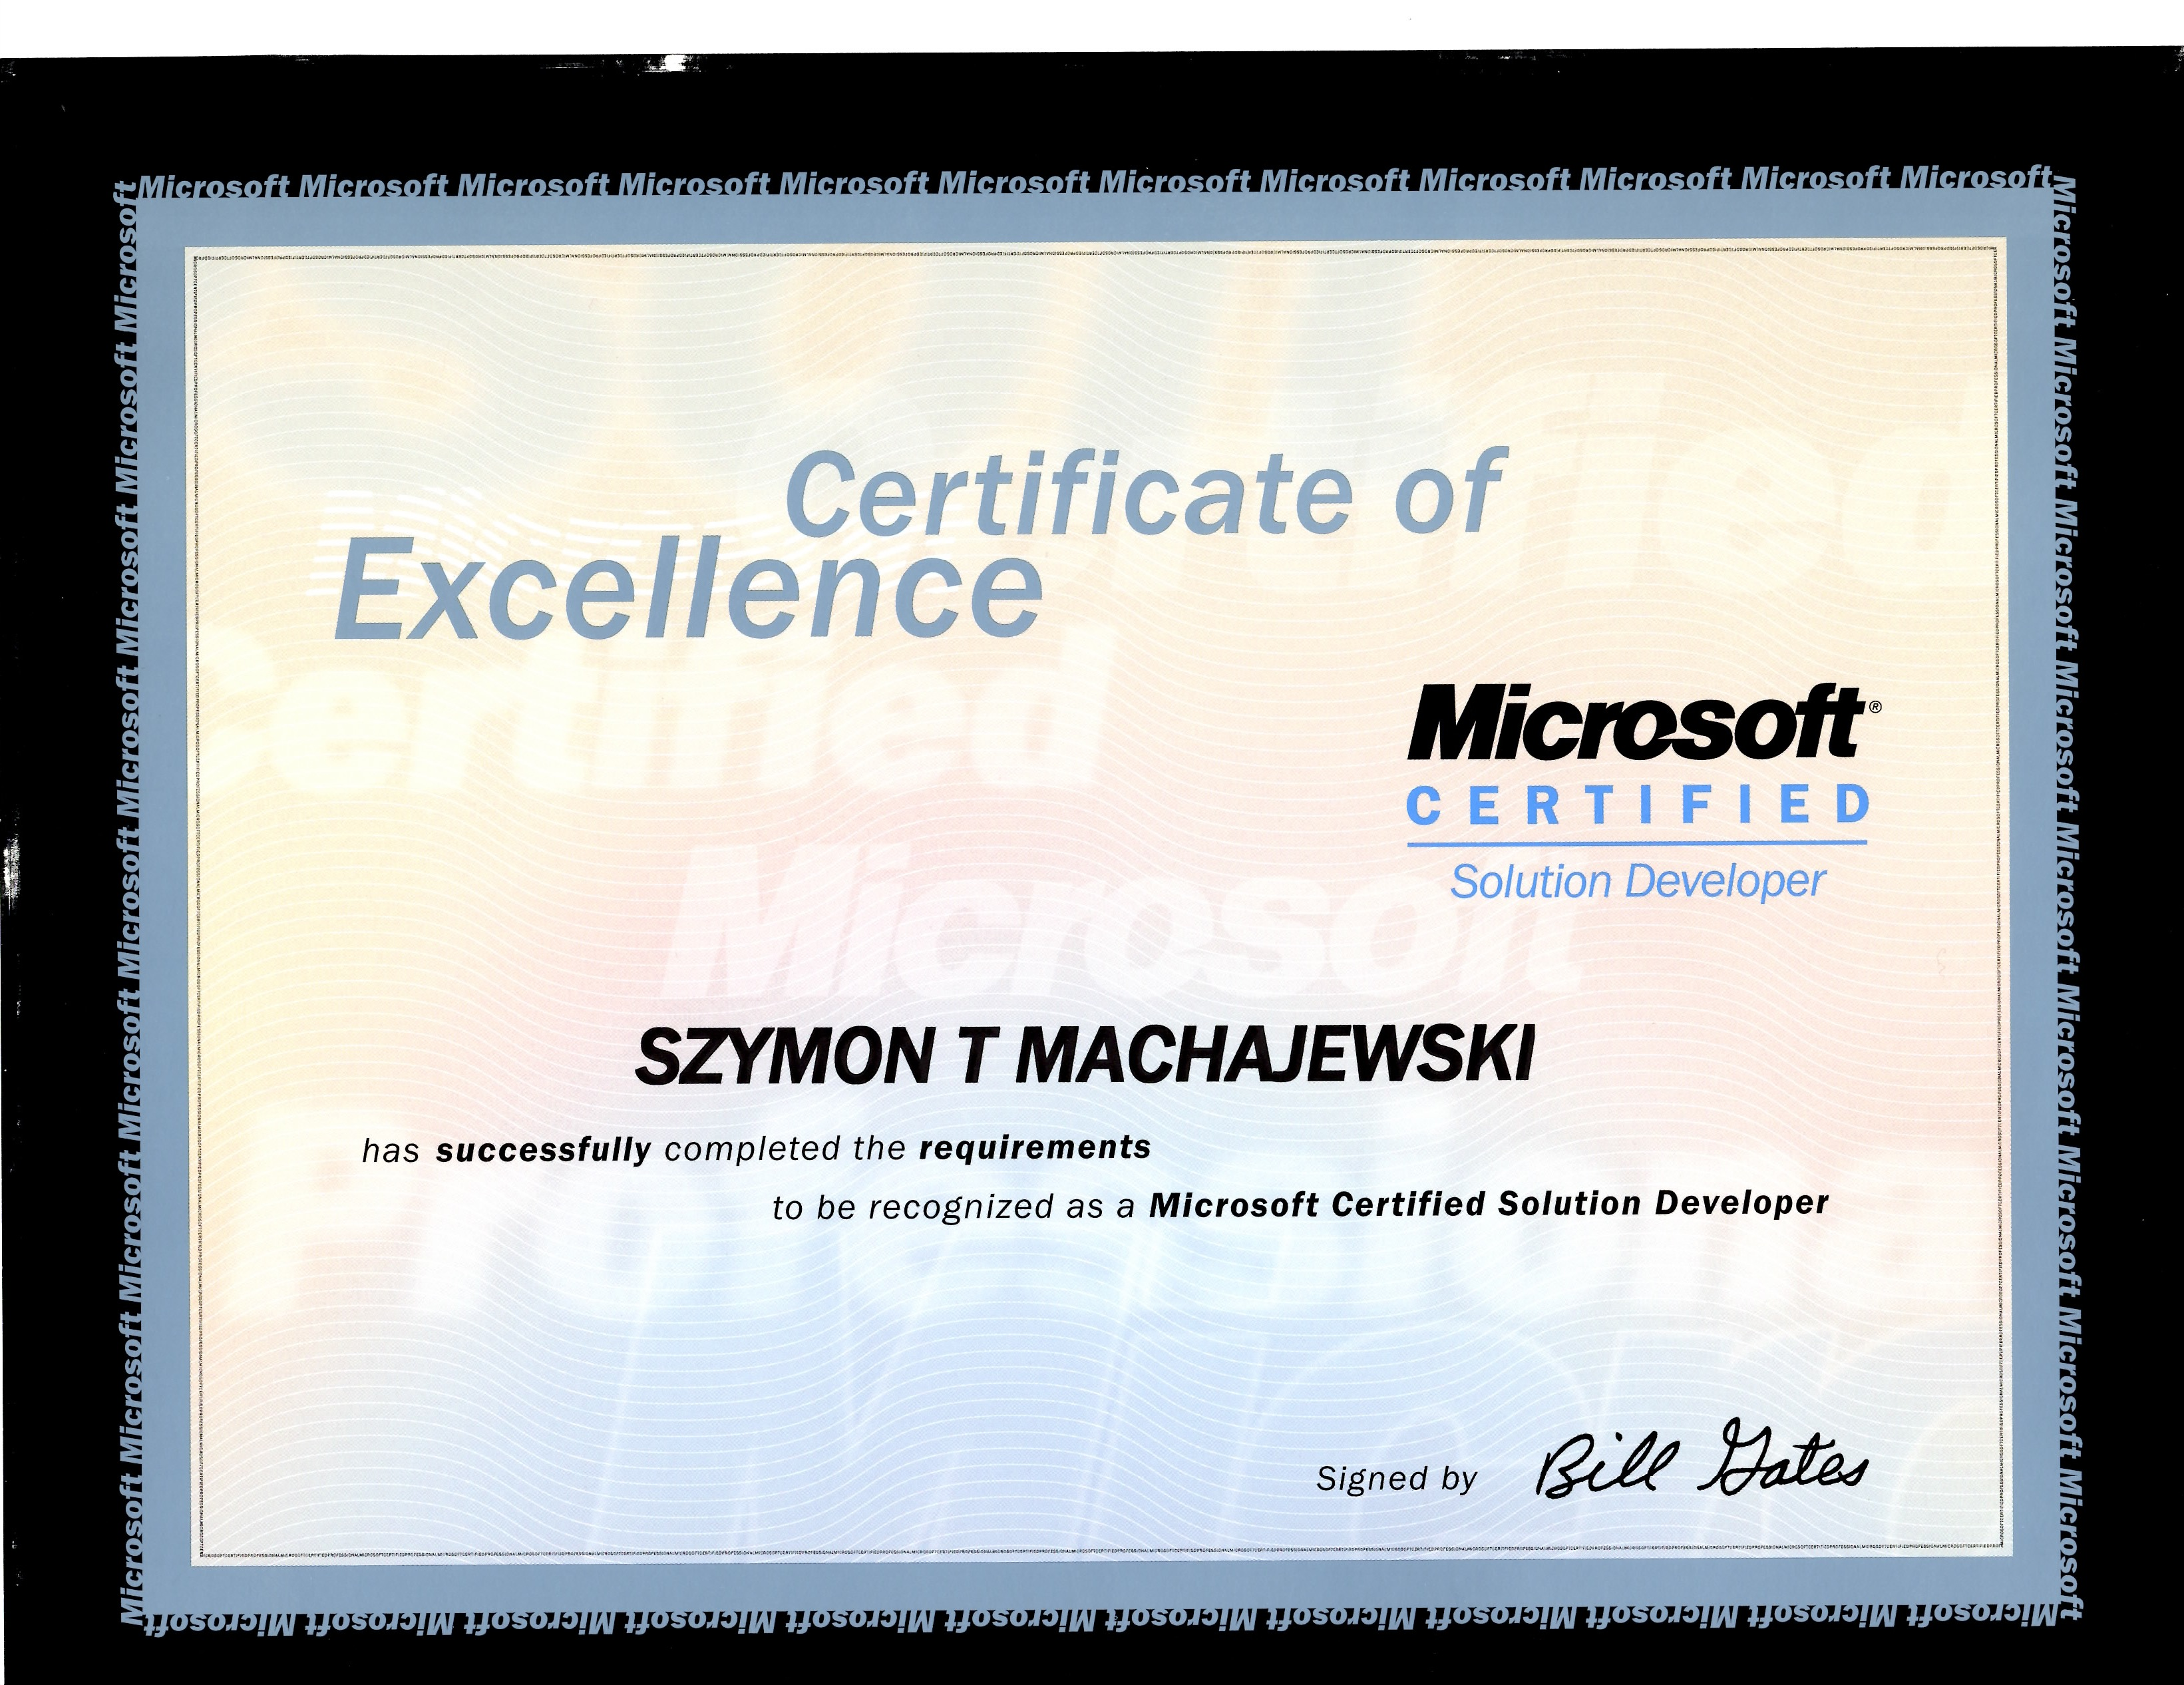 About microsoft certificate of excellence mcsd signed by bill gates 1betcityfo Gallery